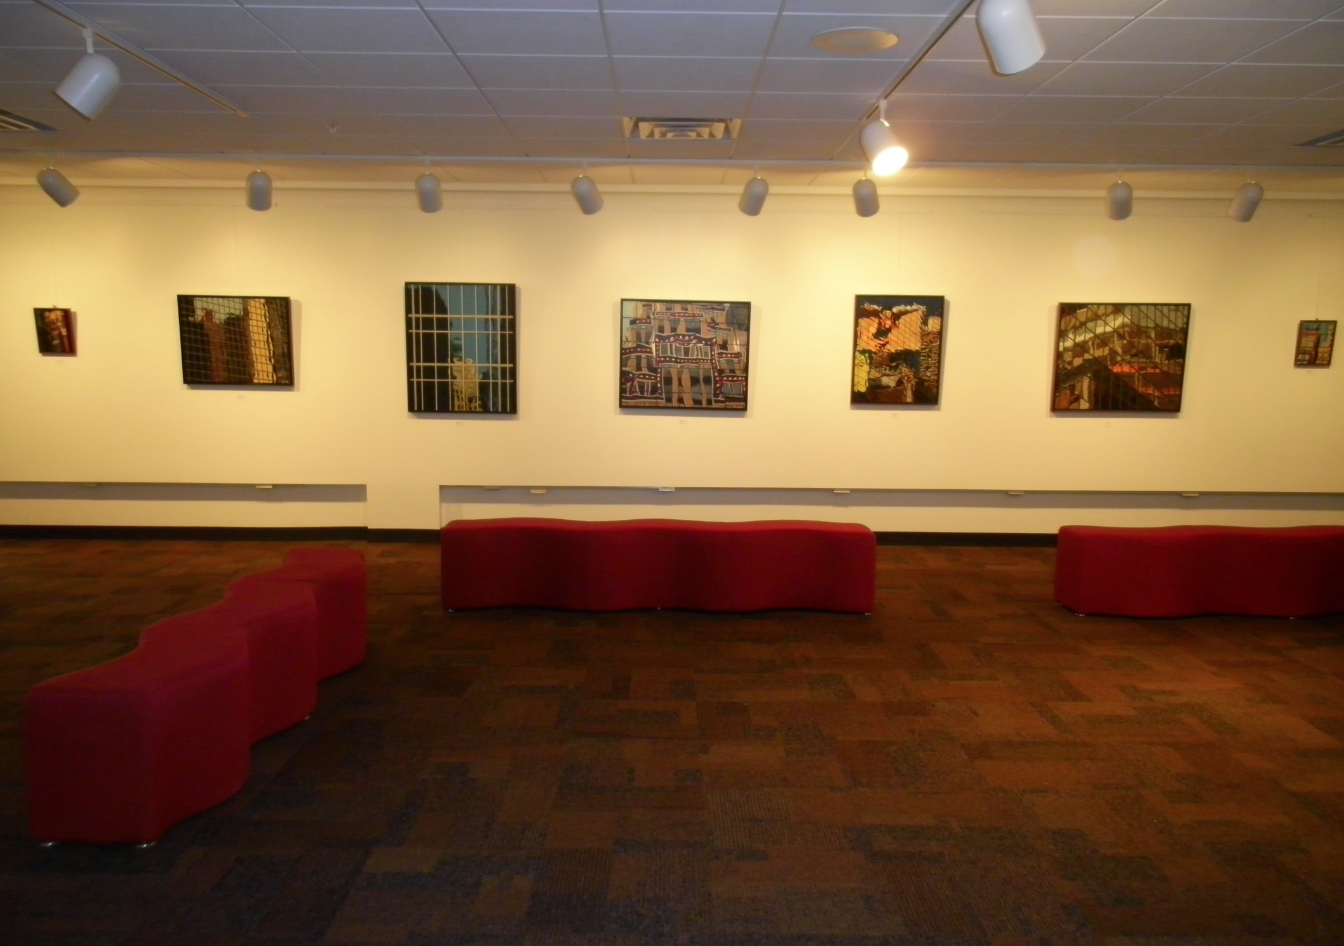 View of the William Whipple Gallery during exhibit